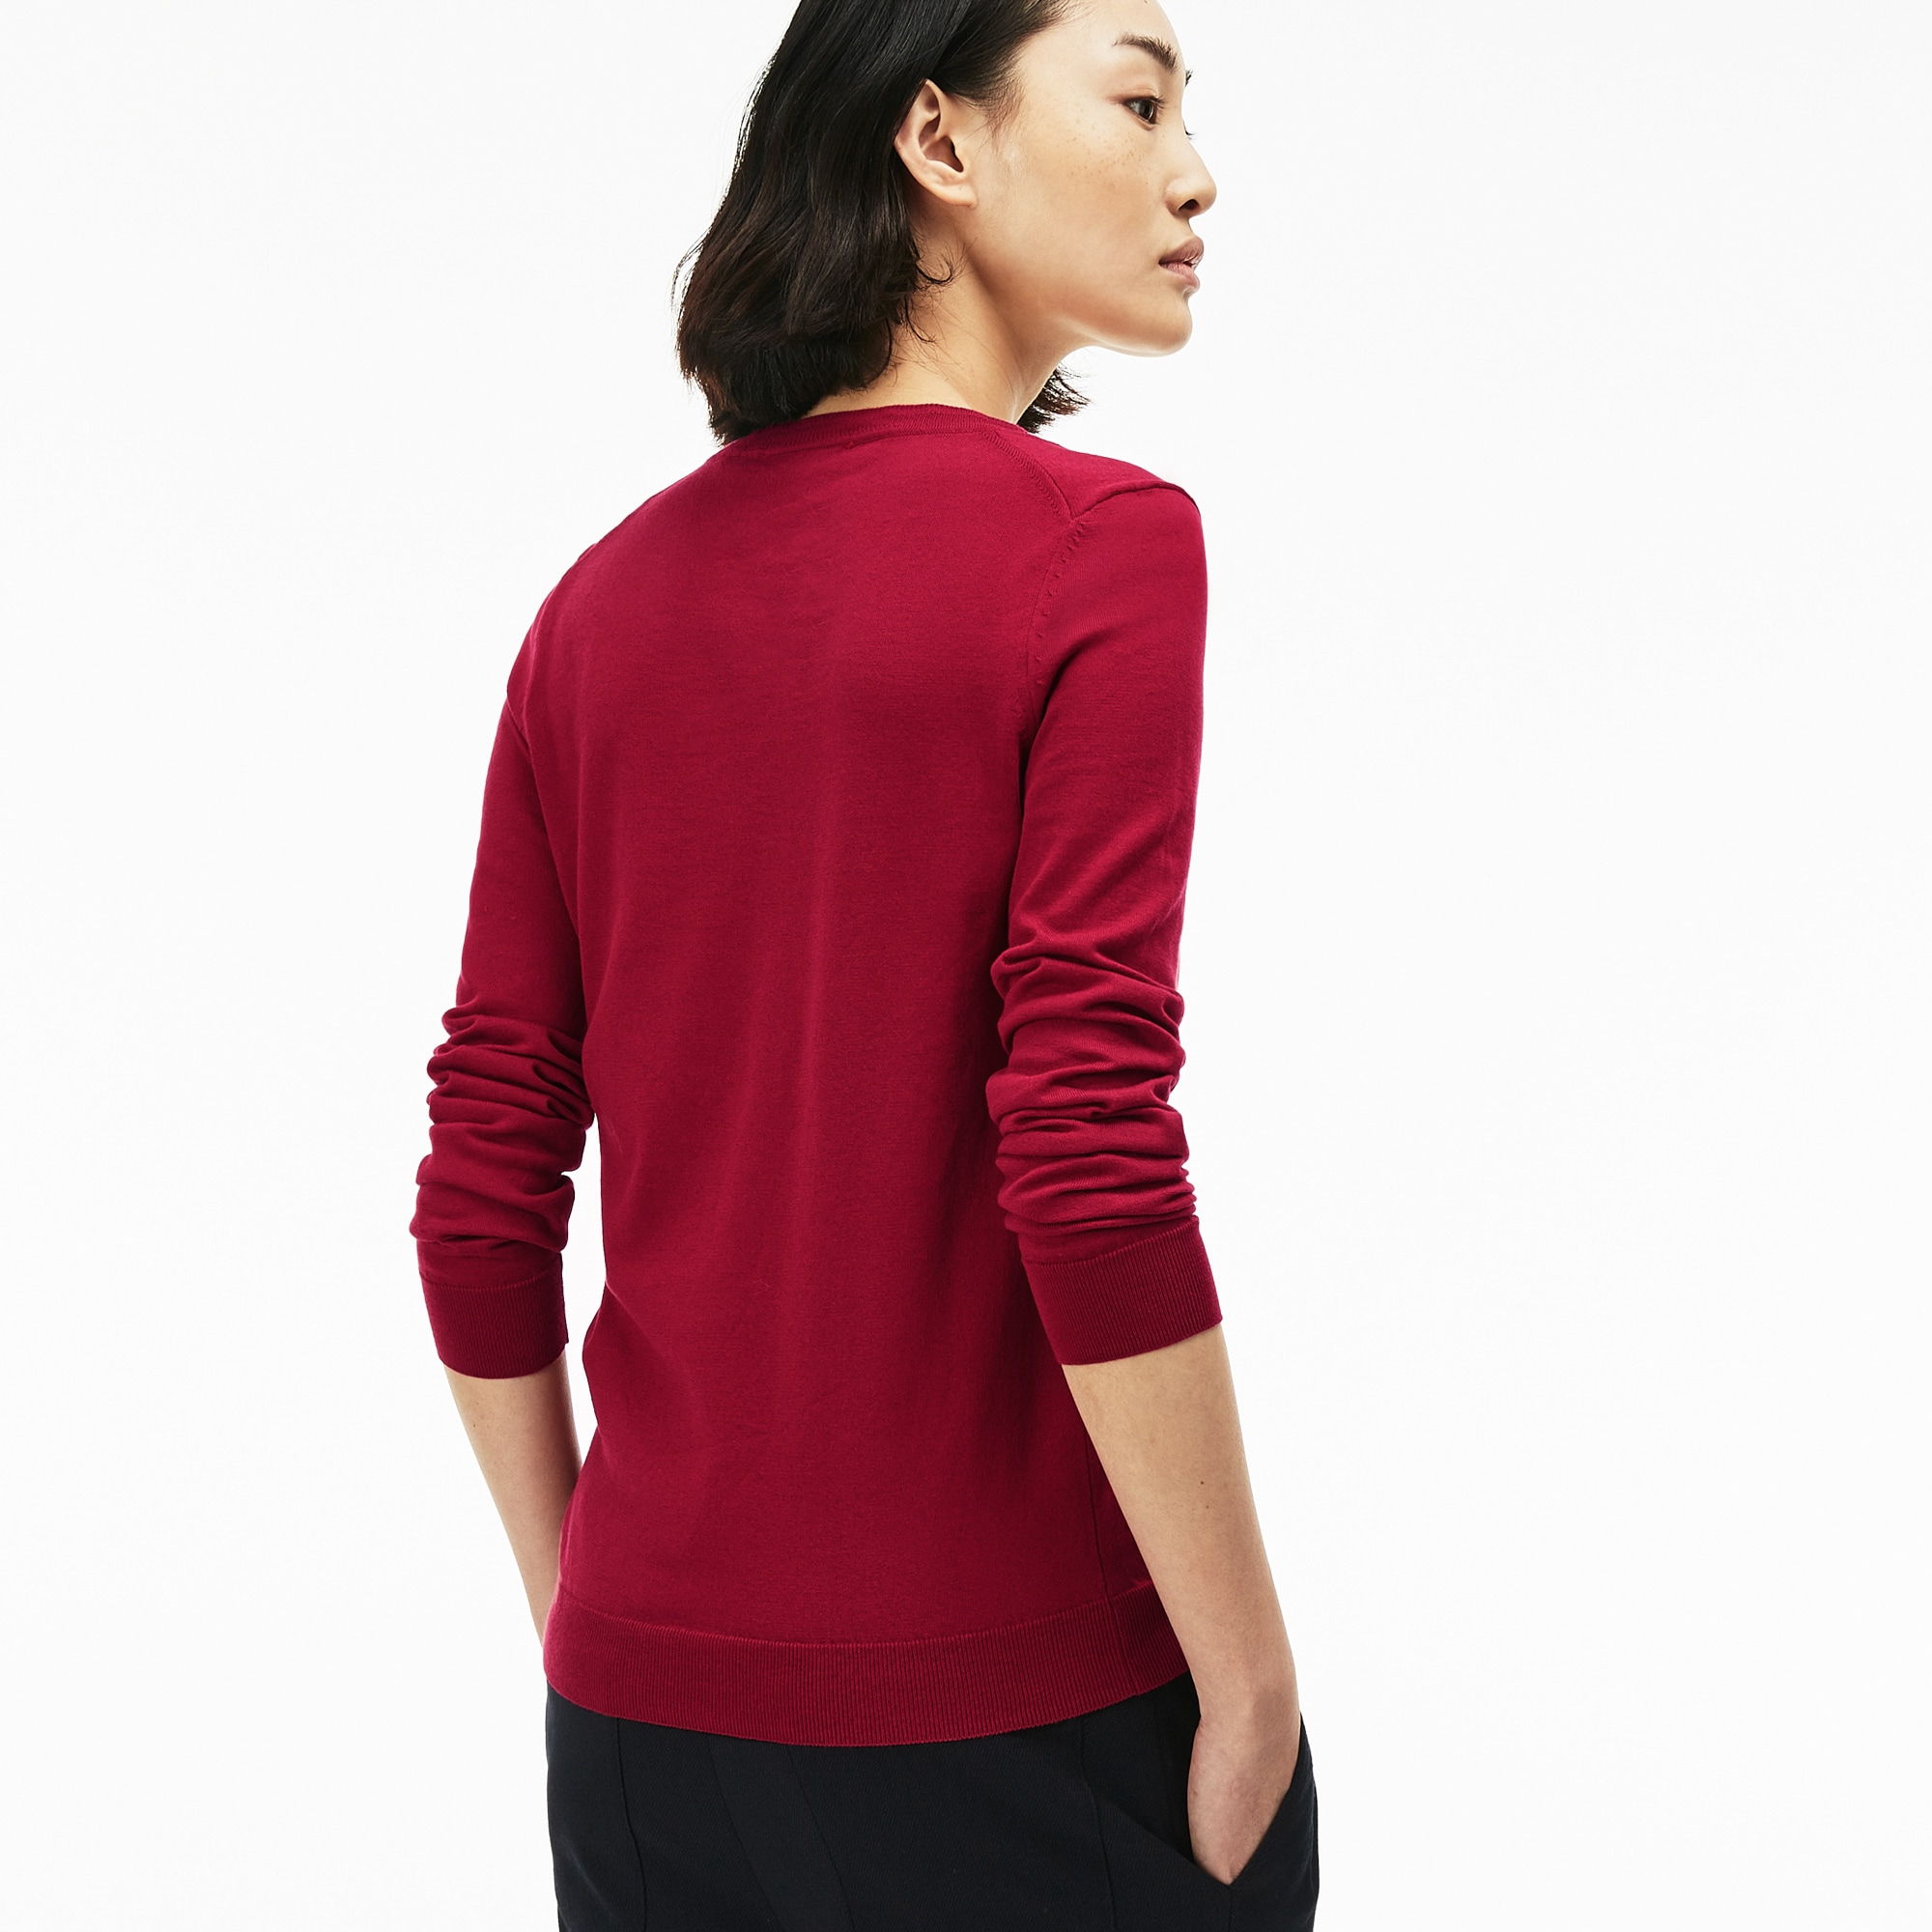 Women's V-neck Jersey Sweater